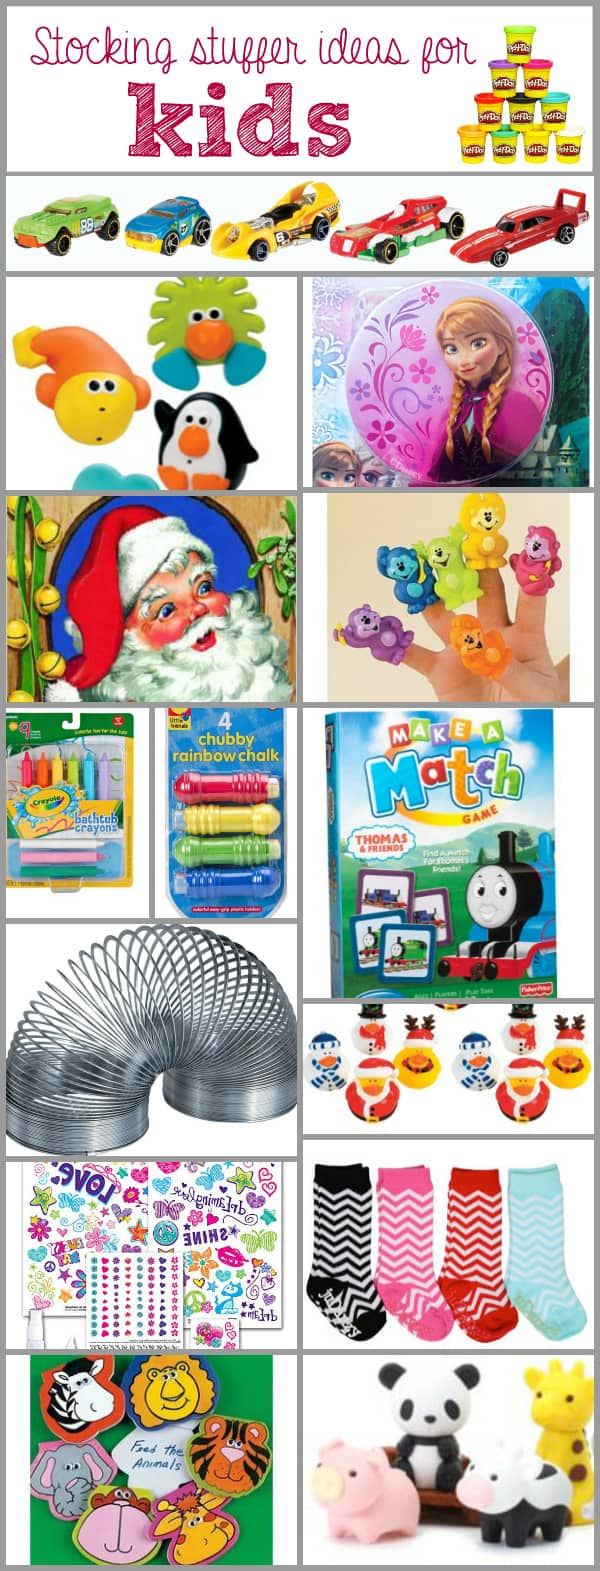 Stocking stuffers for kids - Ask Anna